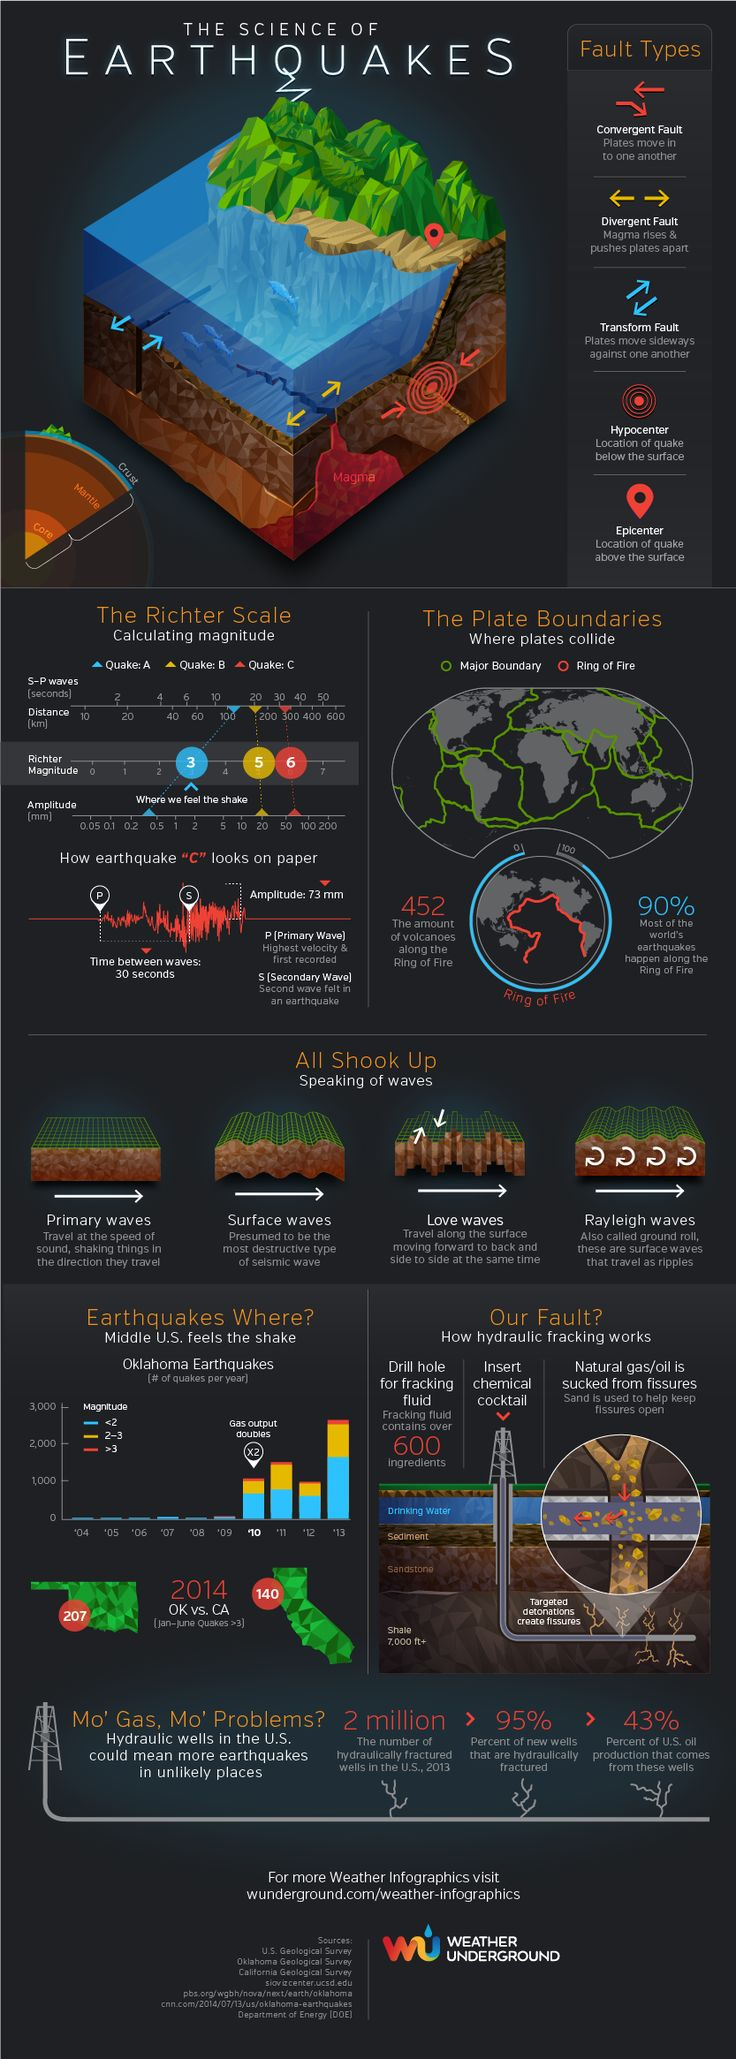 The Science of Earthquakes click here: http://ift.tt/2iDVI3B